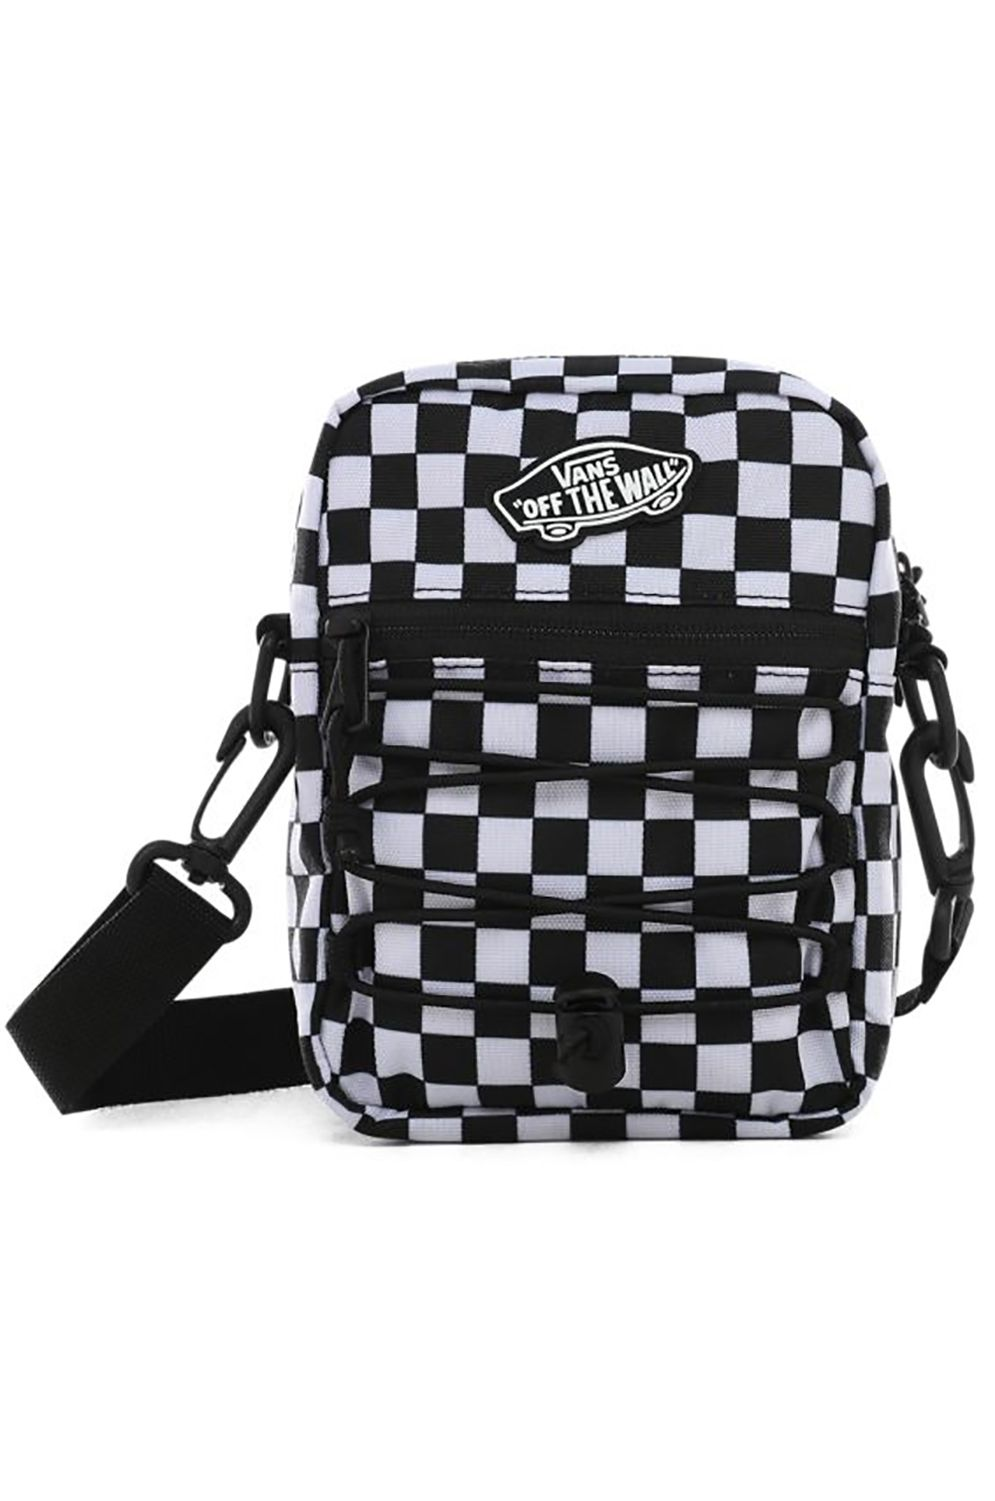 Vans Waist Bag STREET READY II CROSSBODY Black/White Checkerboard